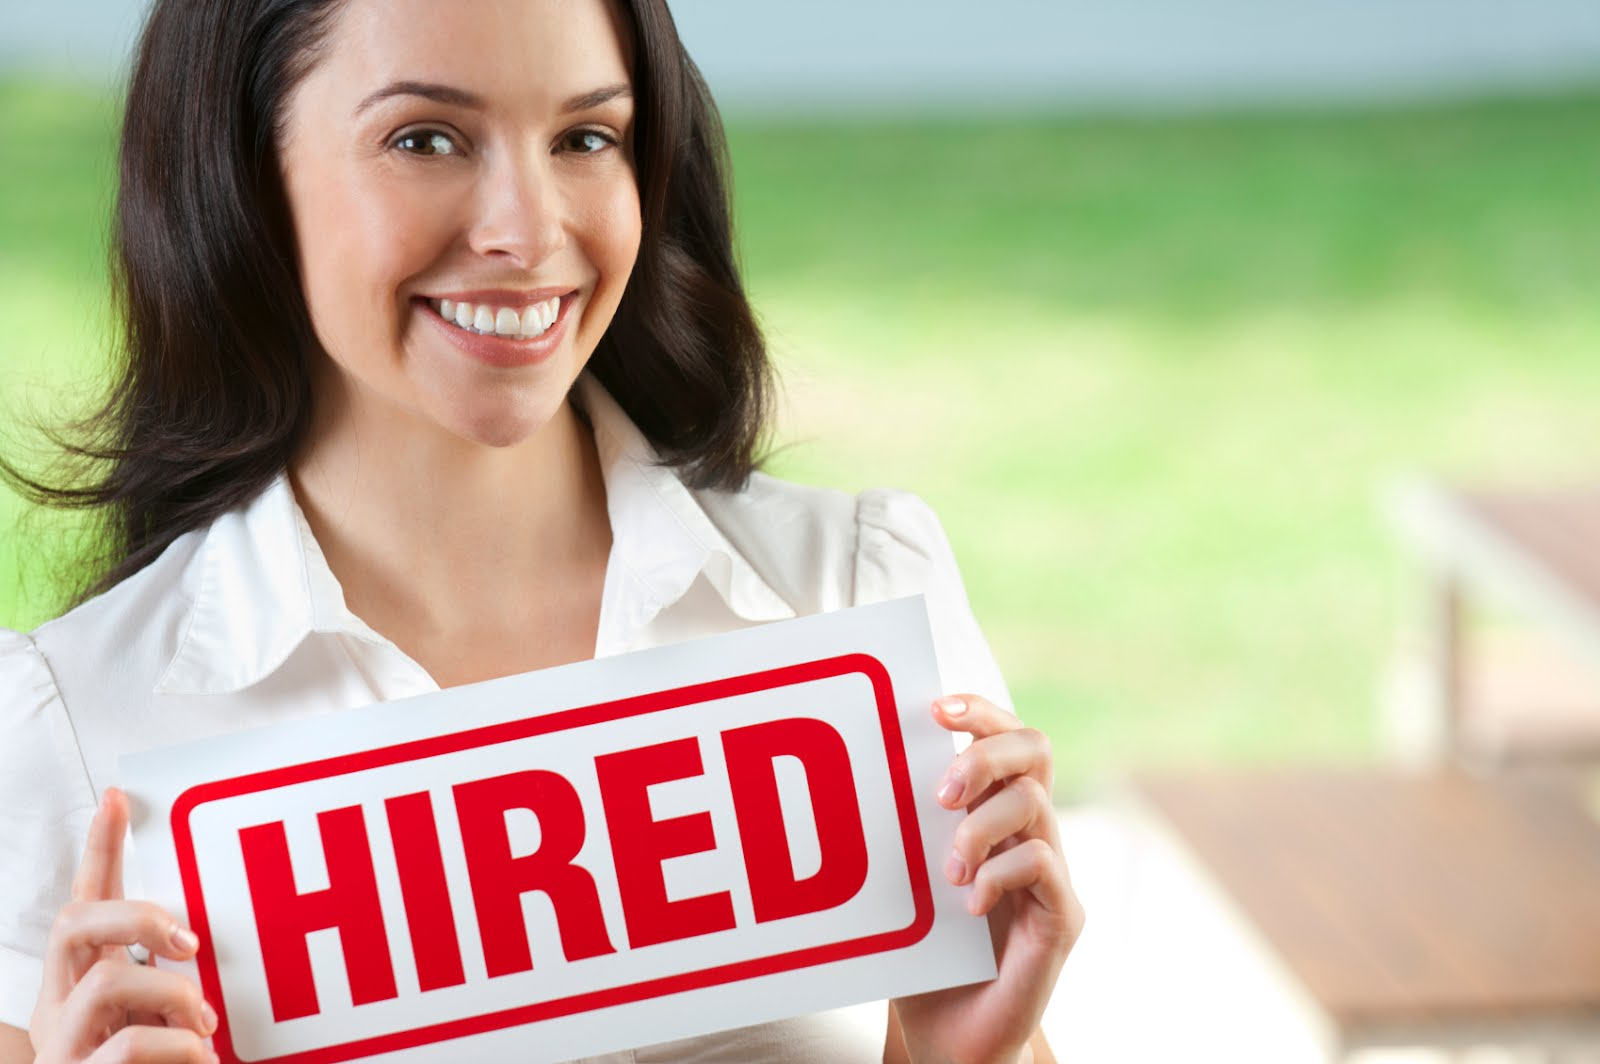 How to get a job in canada from kenya